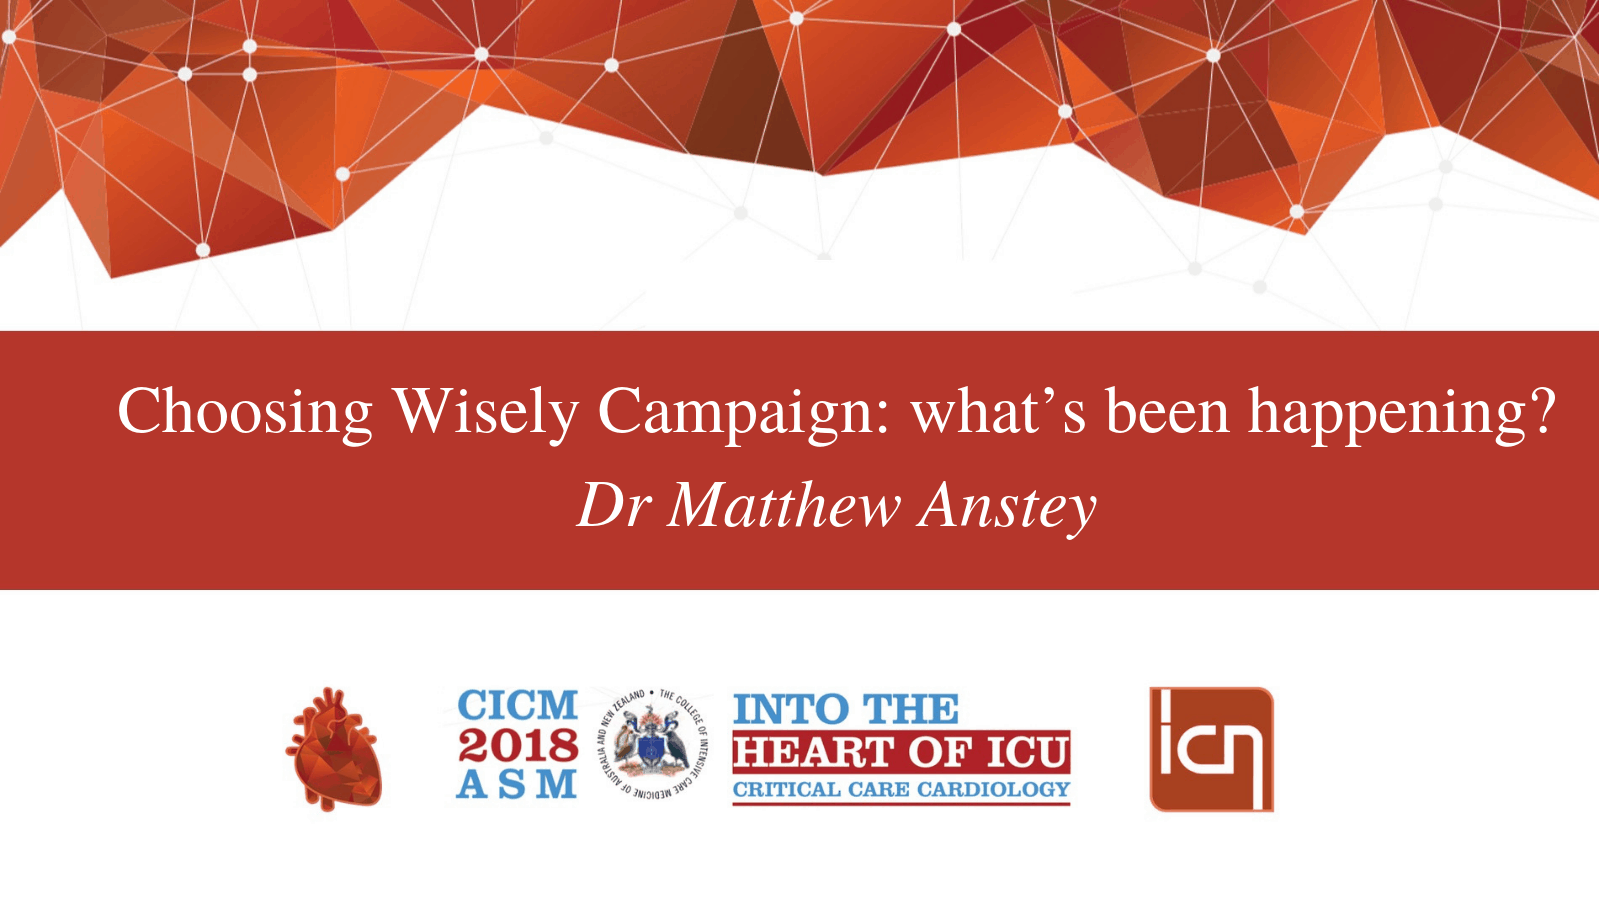 Choosing Wisely Campaign: what's been happening?